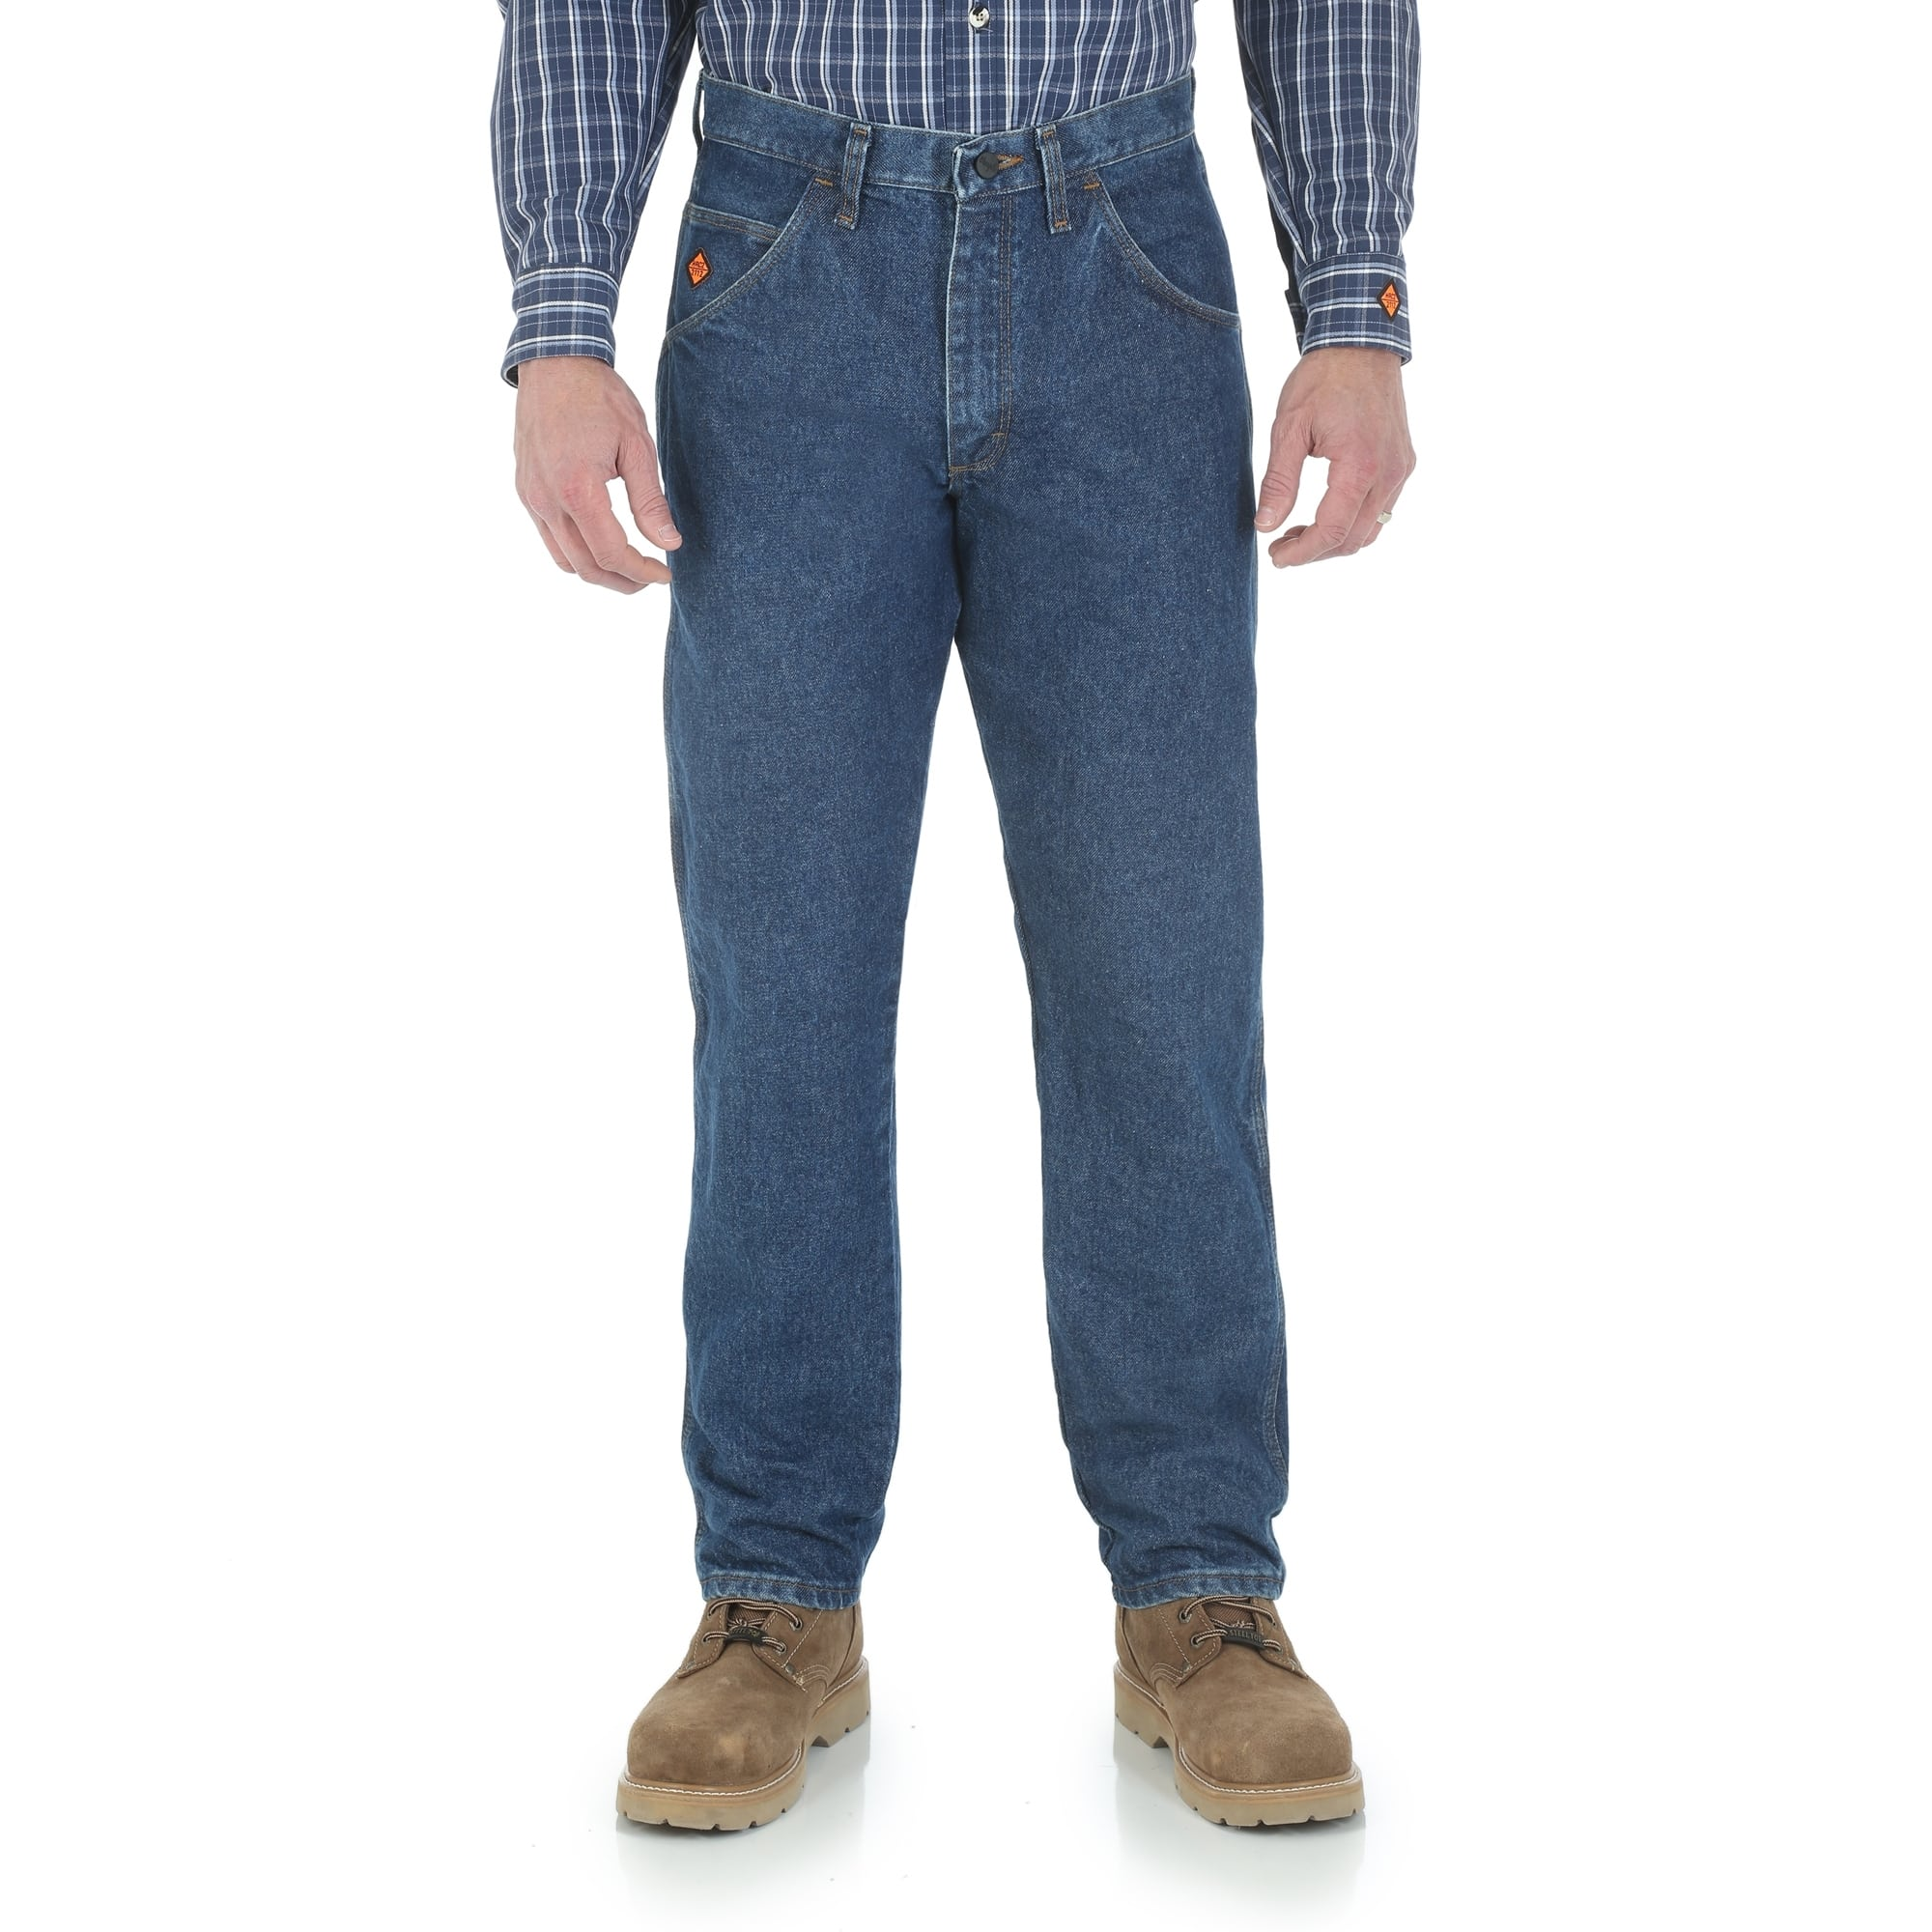 521c772f9dc4 Wrangler Riggs Workwear Men s FR Relaxed Fit Jeans ...